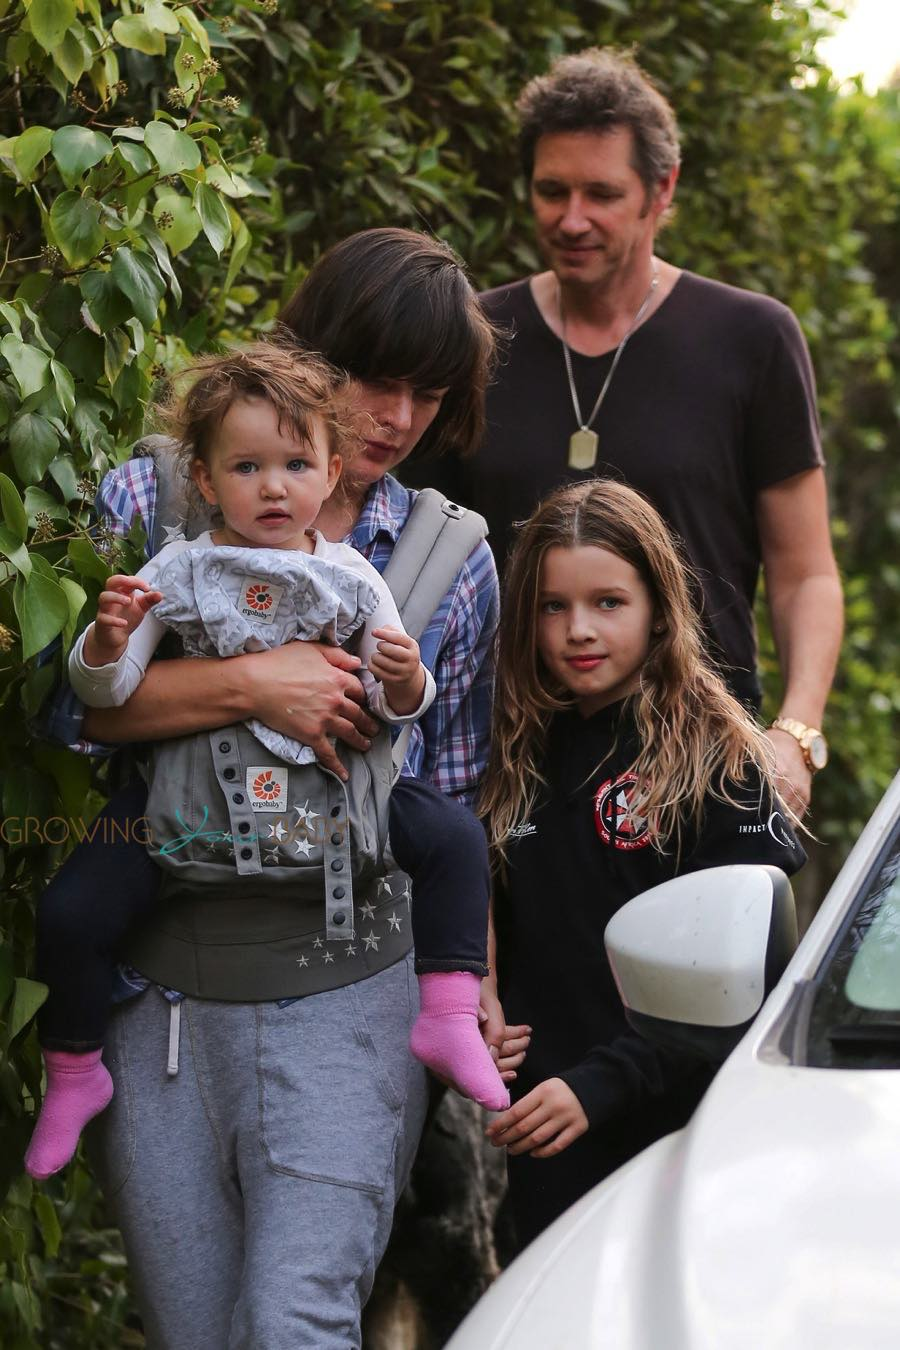 Three princesses: Milla Jovovich and her daughters fascinated the Internet 31